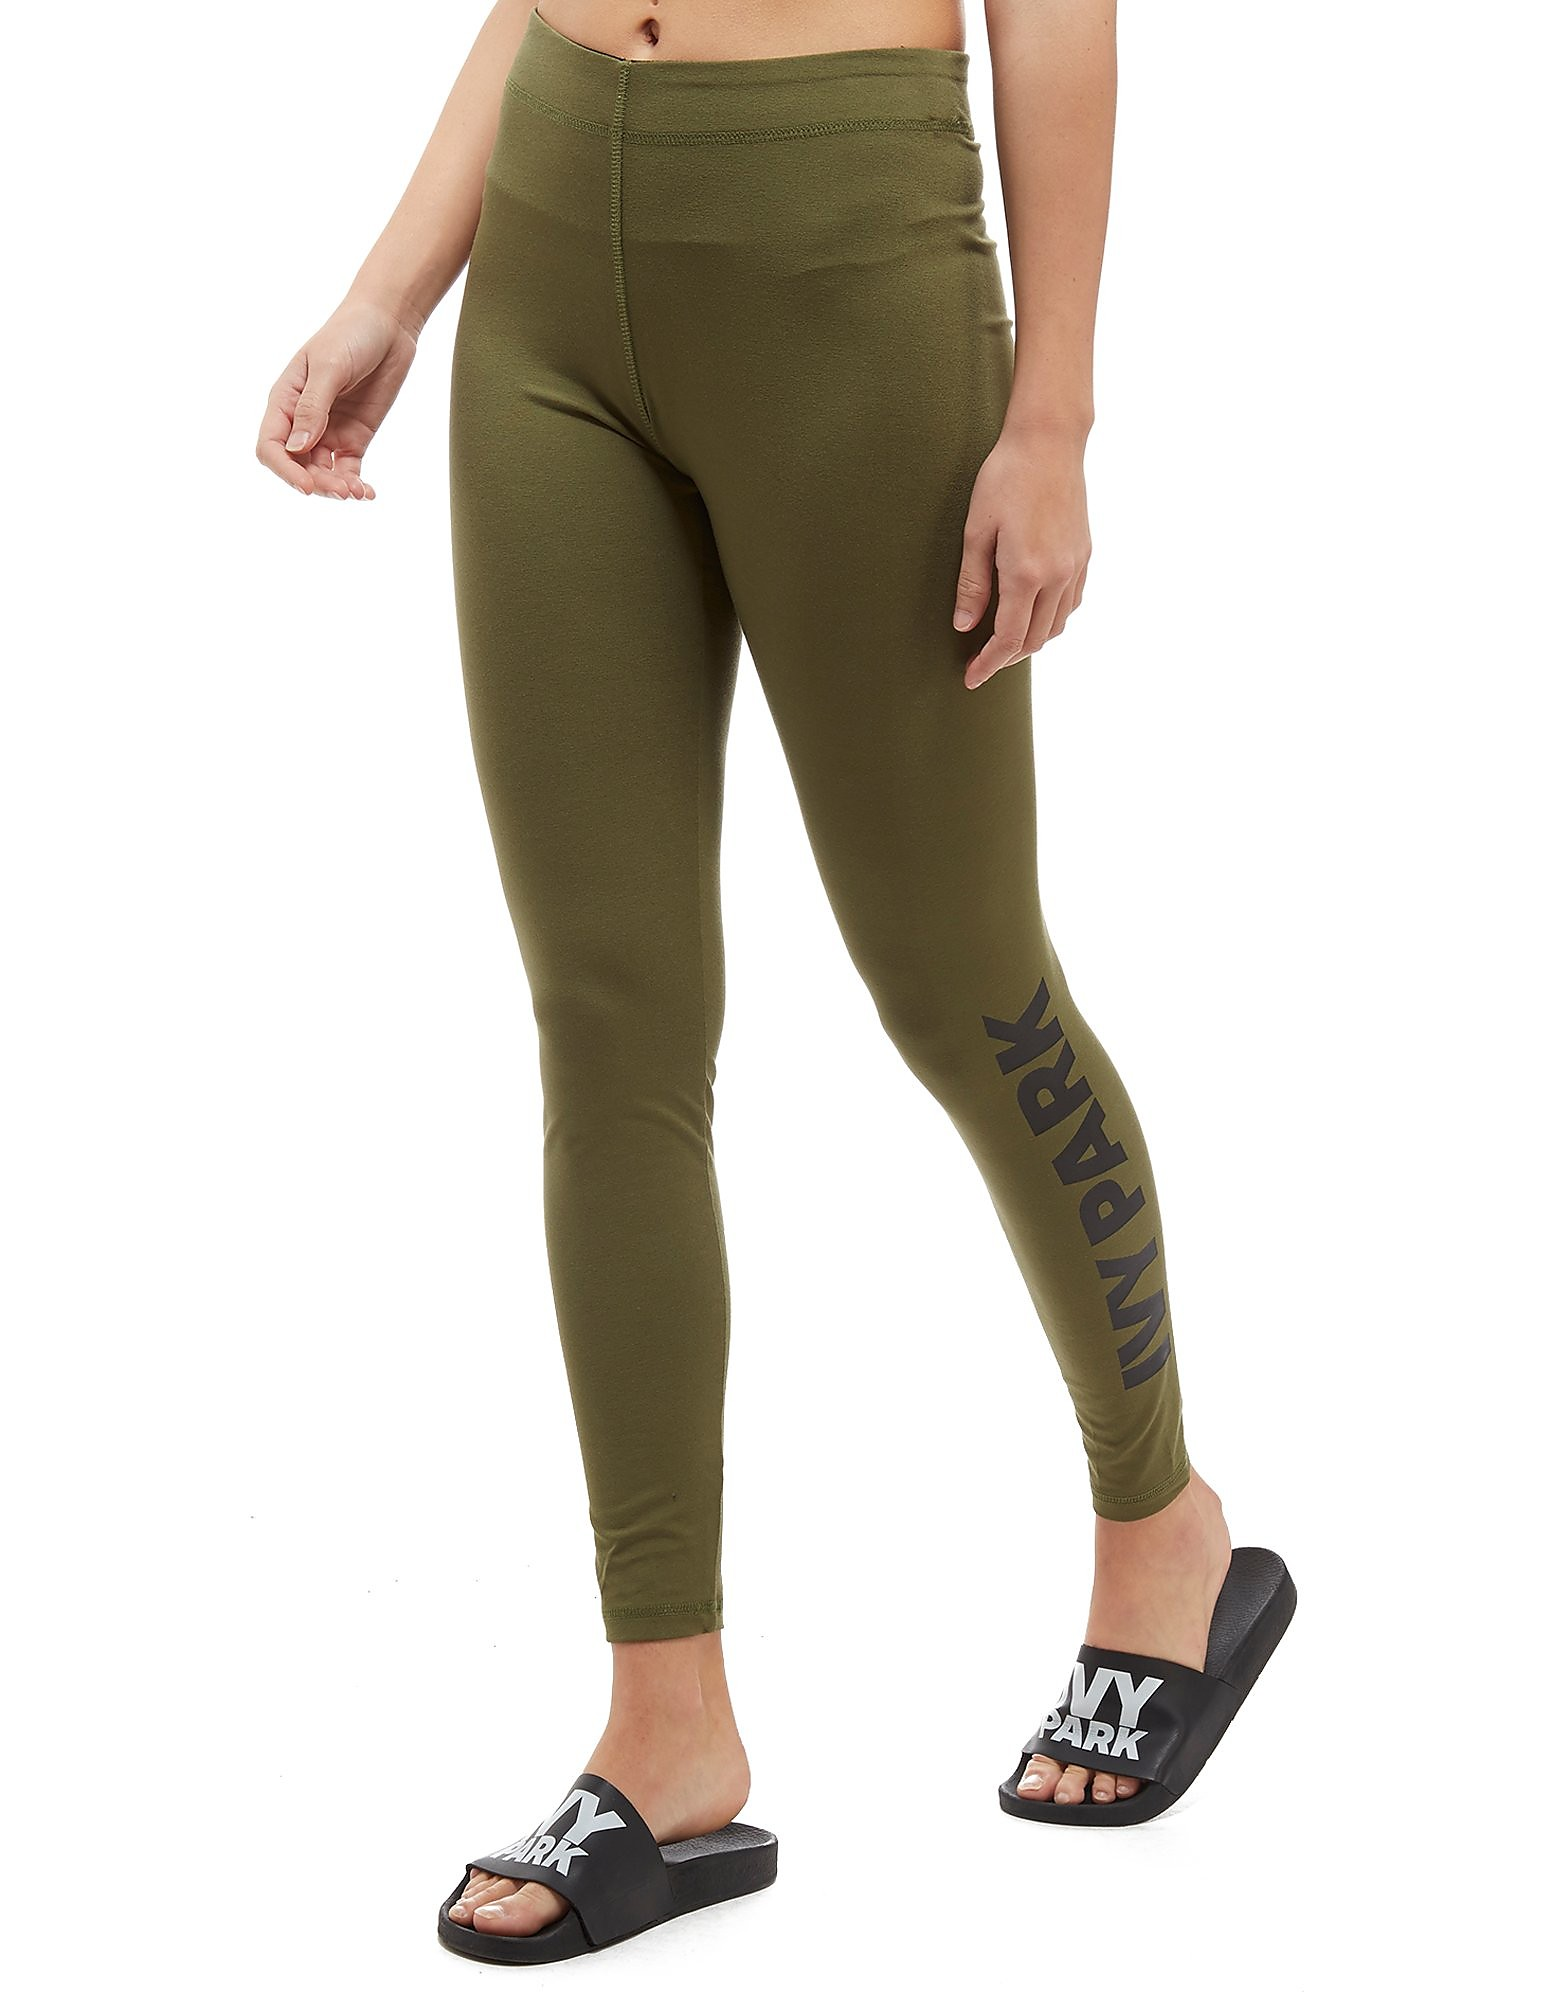 IVY PARK Leggings